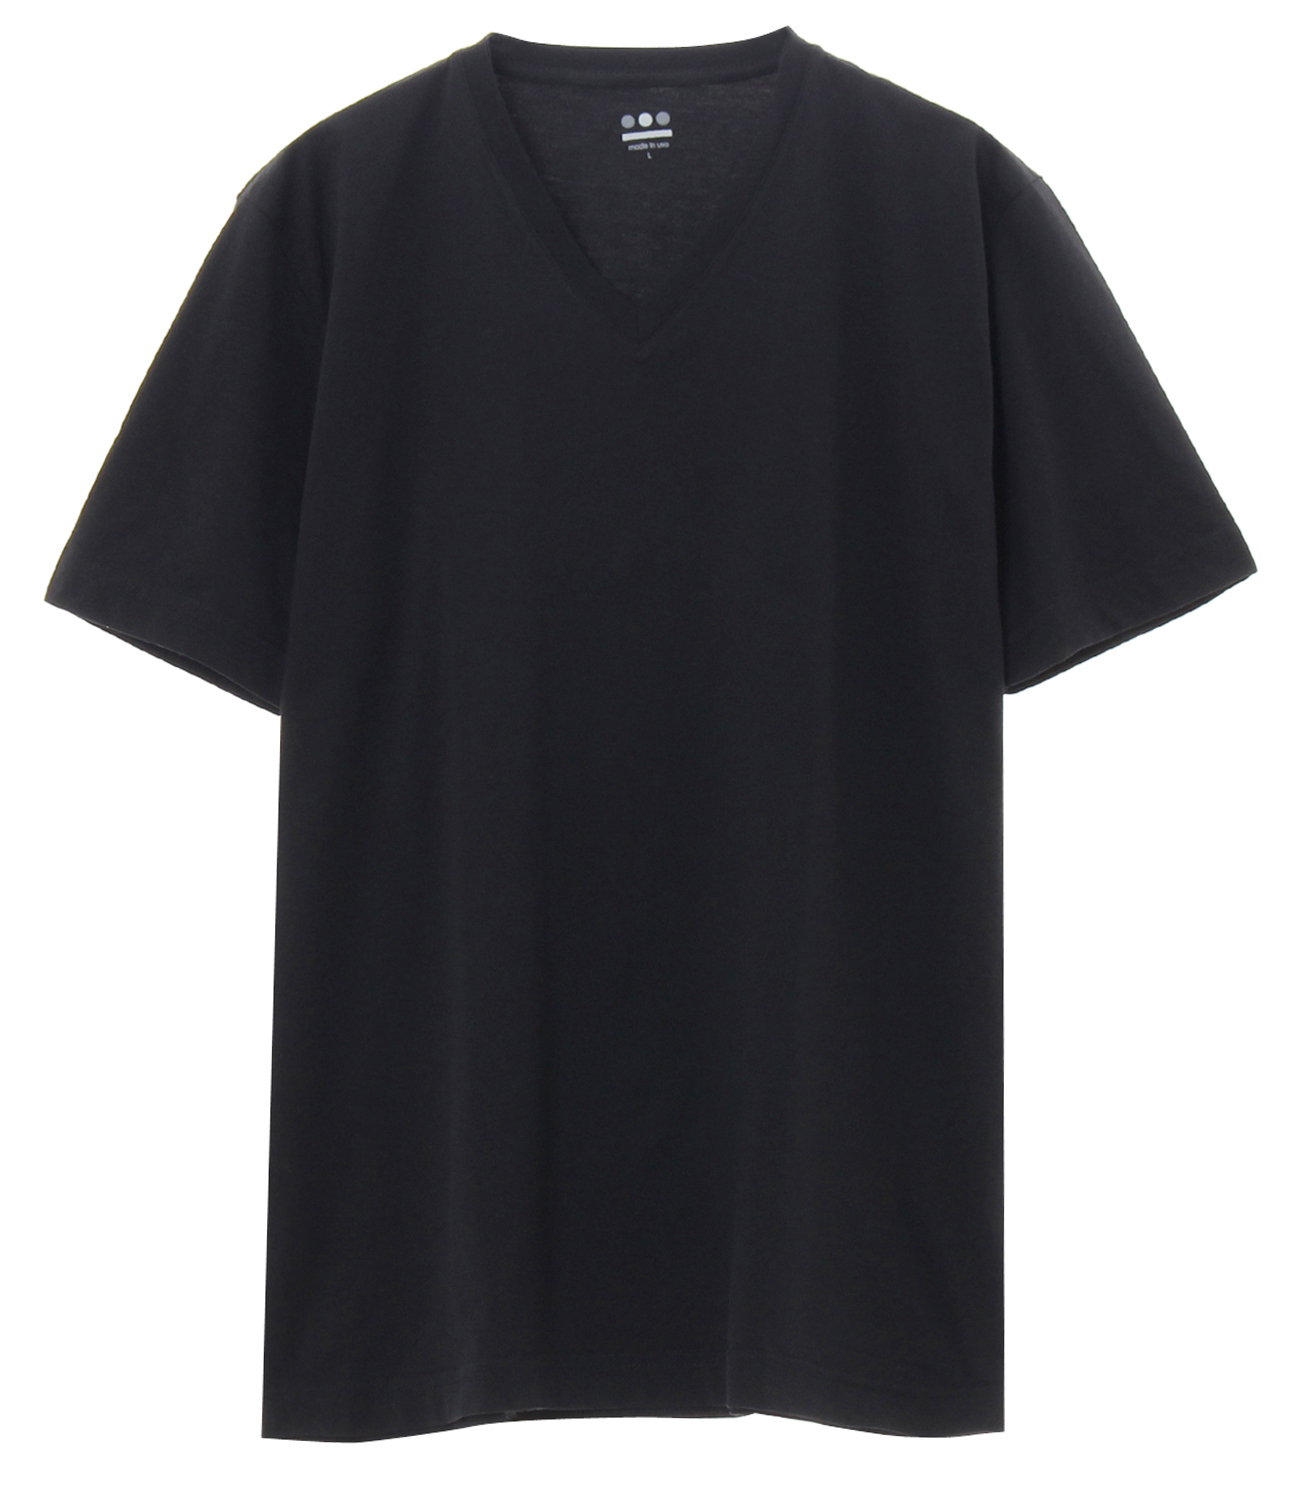 powdery cotton v-neck 詳細画像 black 1